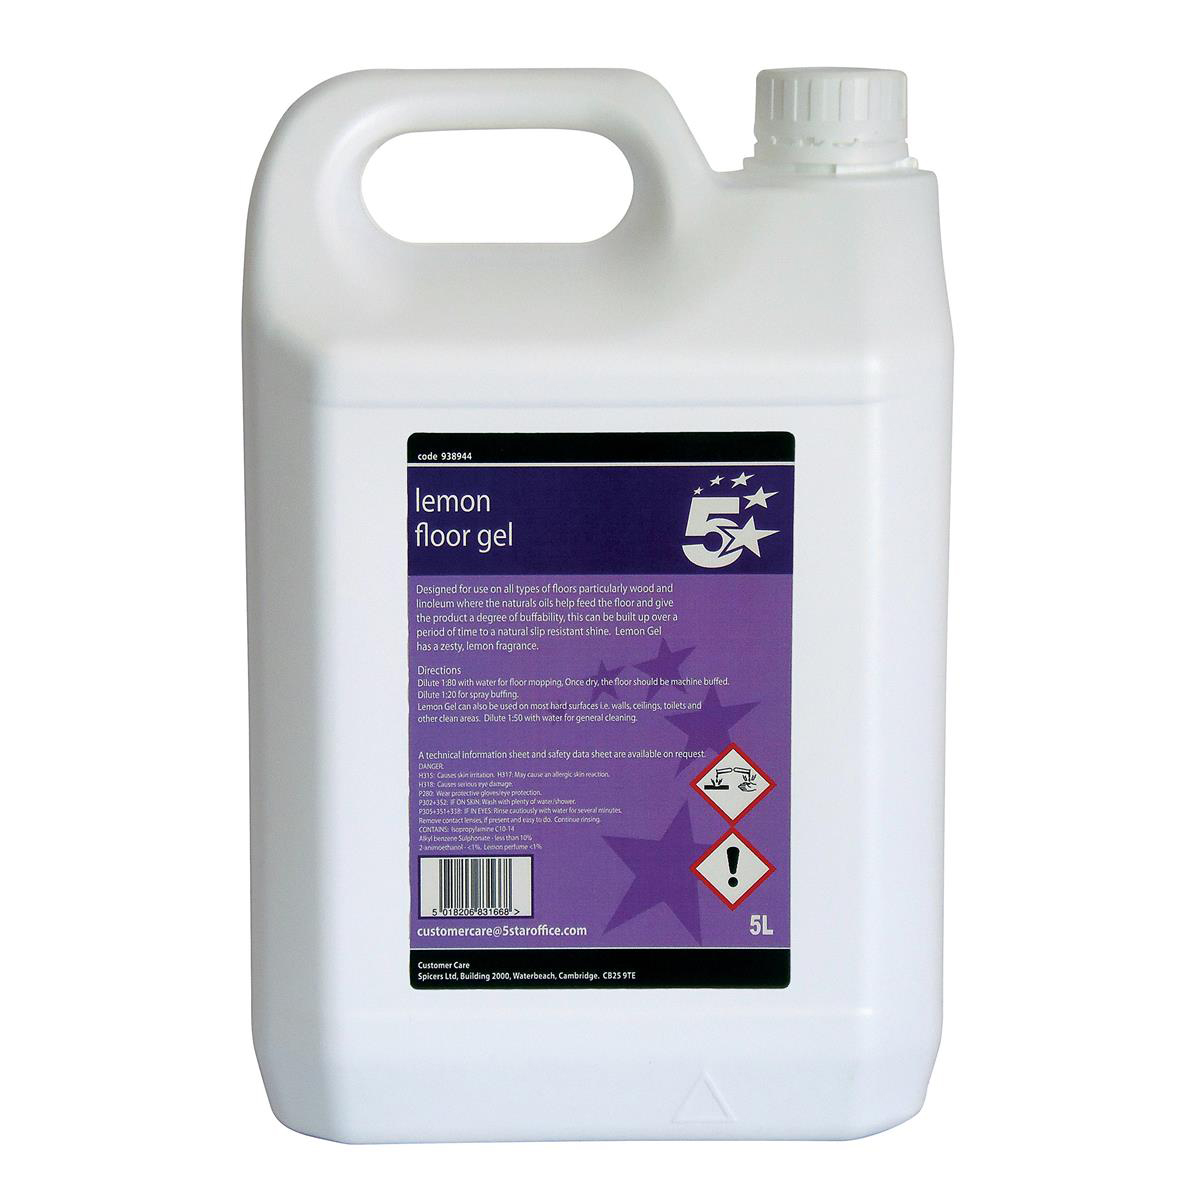 5 Star Facilities Lemon Floor Gel 5 Litres